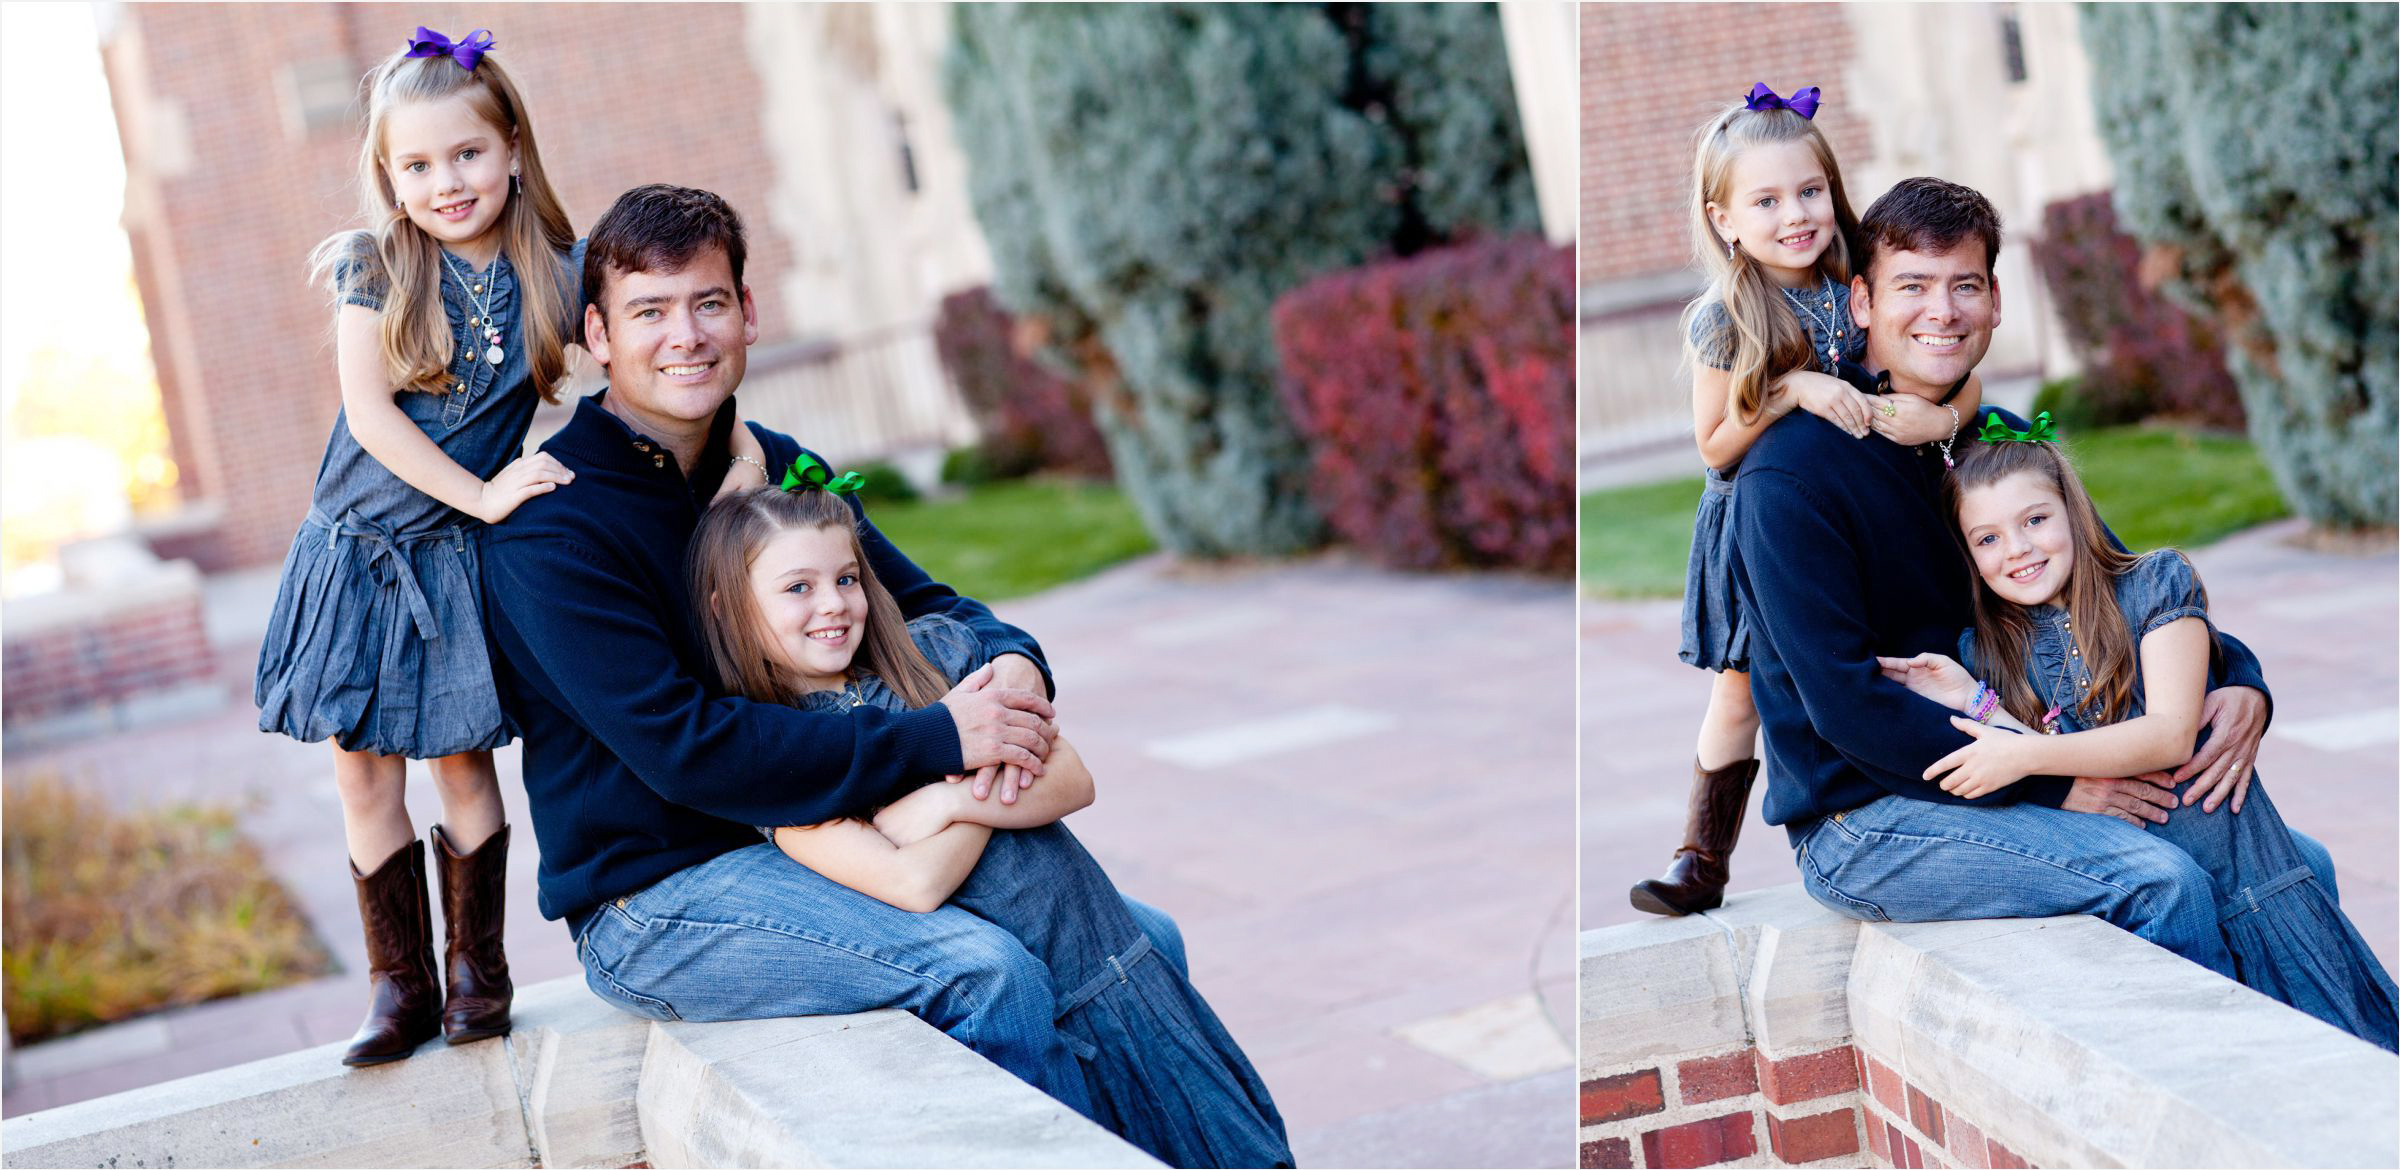 father-daughter-lifestyle-photo-shoot-at-denver-university-002